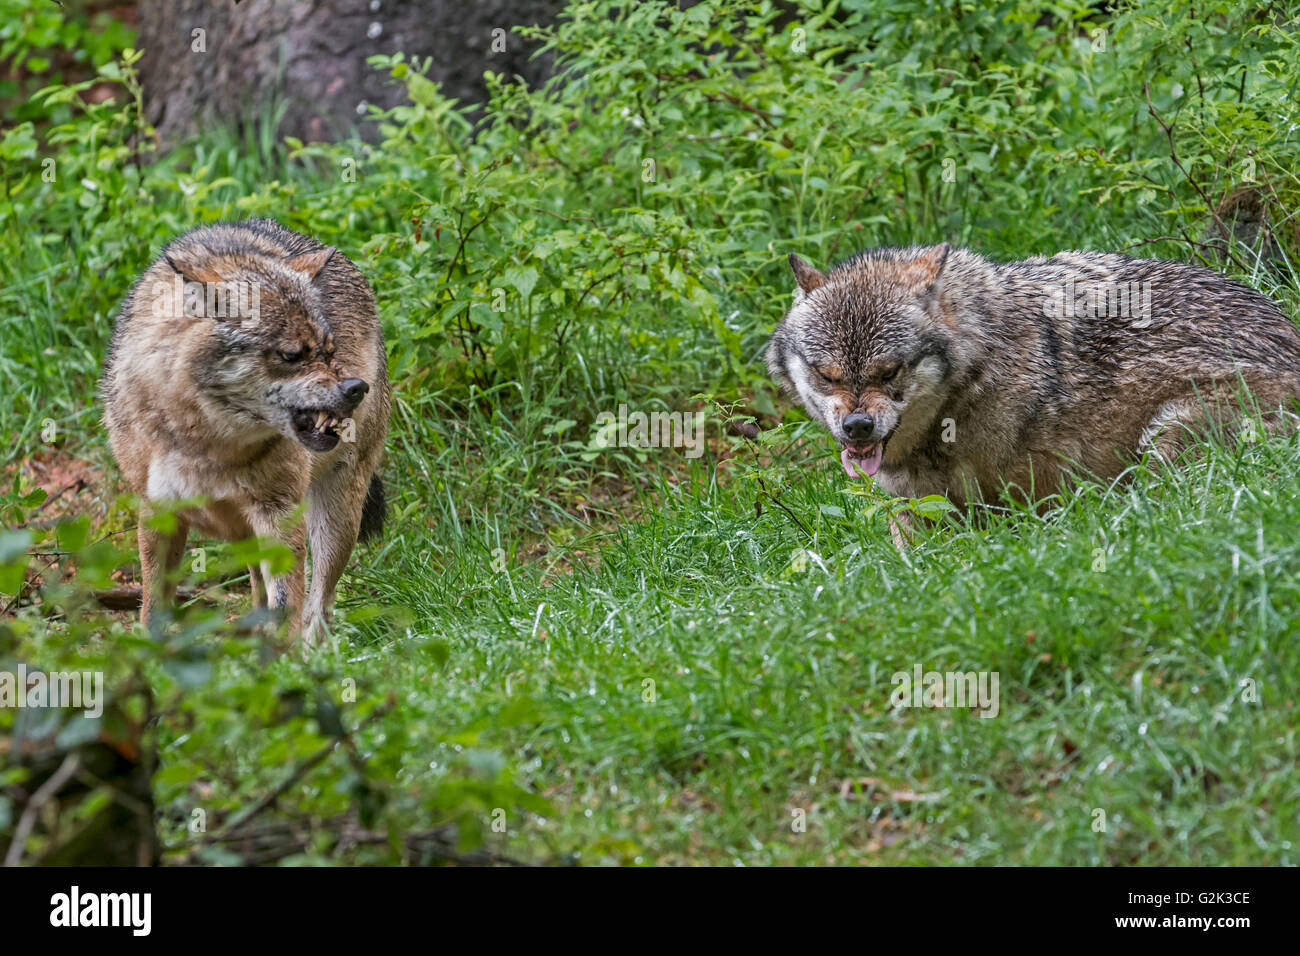 Two aggressive gray wolves / grey wolves (Canis lupus) snarling with bared canines and extended tongue - Stock Image